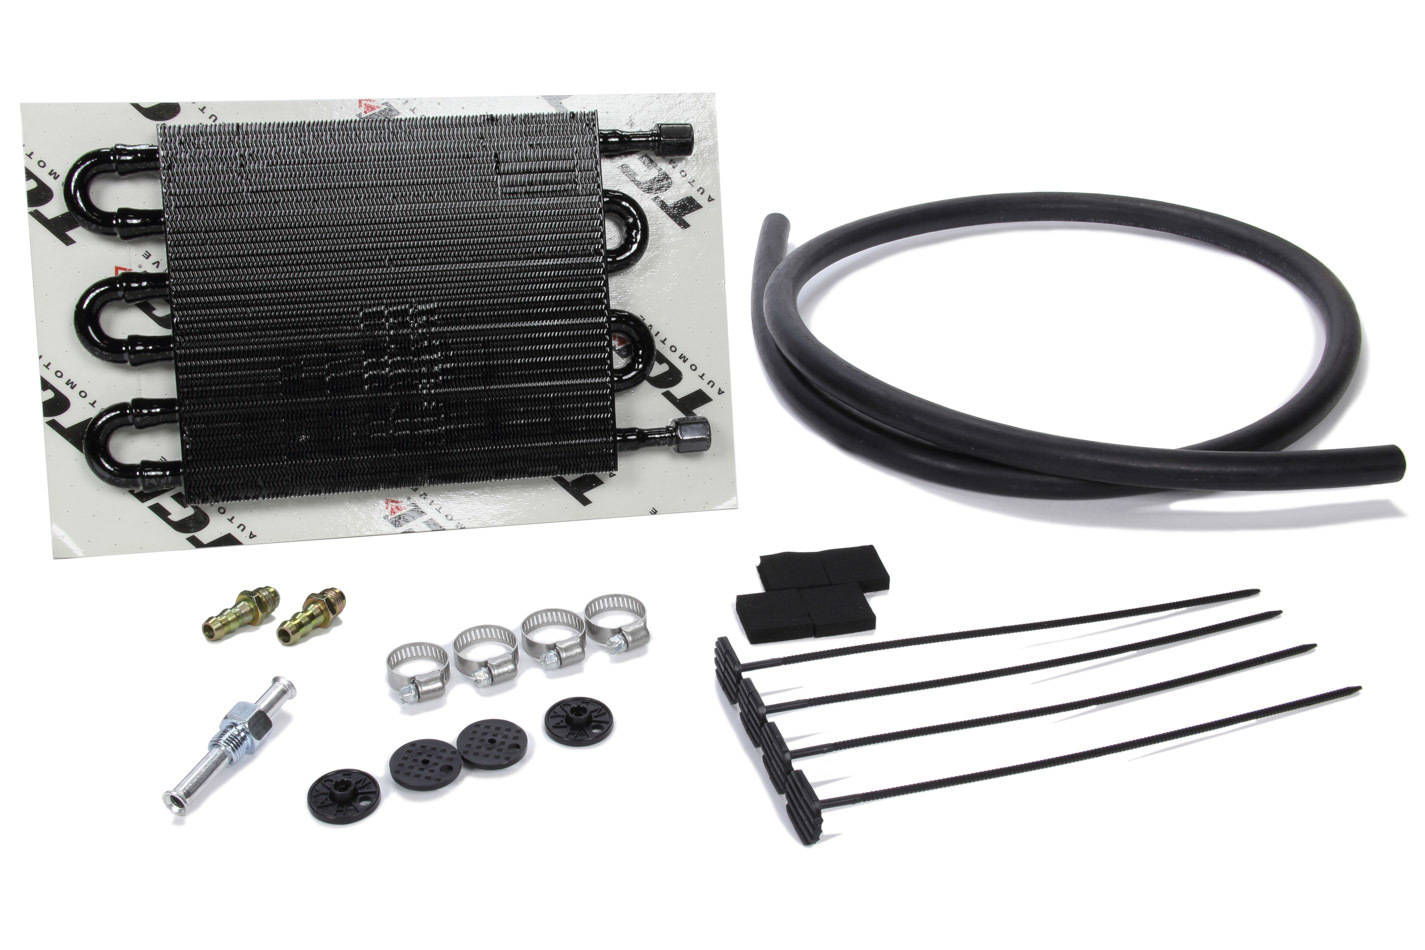 TCI 823500 Fluid Cooler, 16 x 7-1/2 x 3/4 in, Tube Type, 6 AN Female Inlet / Outlet, Aluminum, Black, Automatic Transmission, Kit